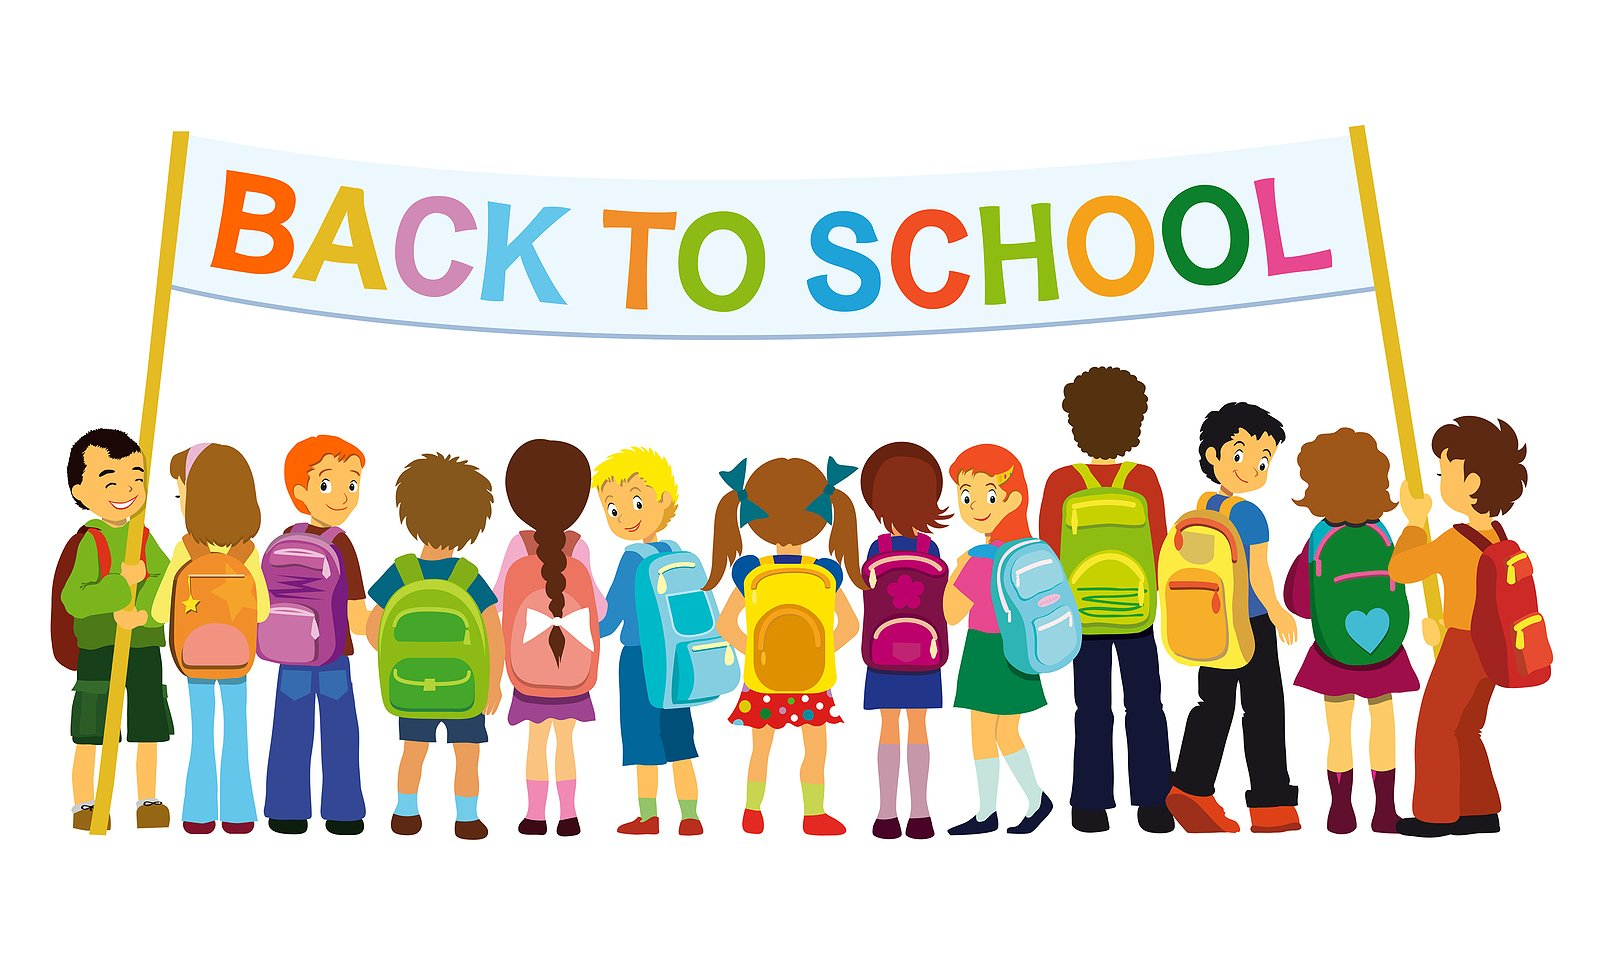 Back to school clipart clip art school clip art teacher clipart